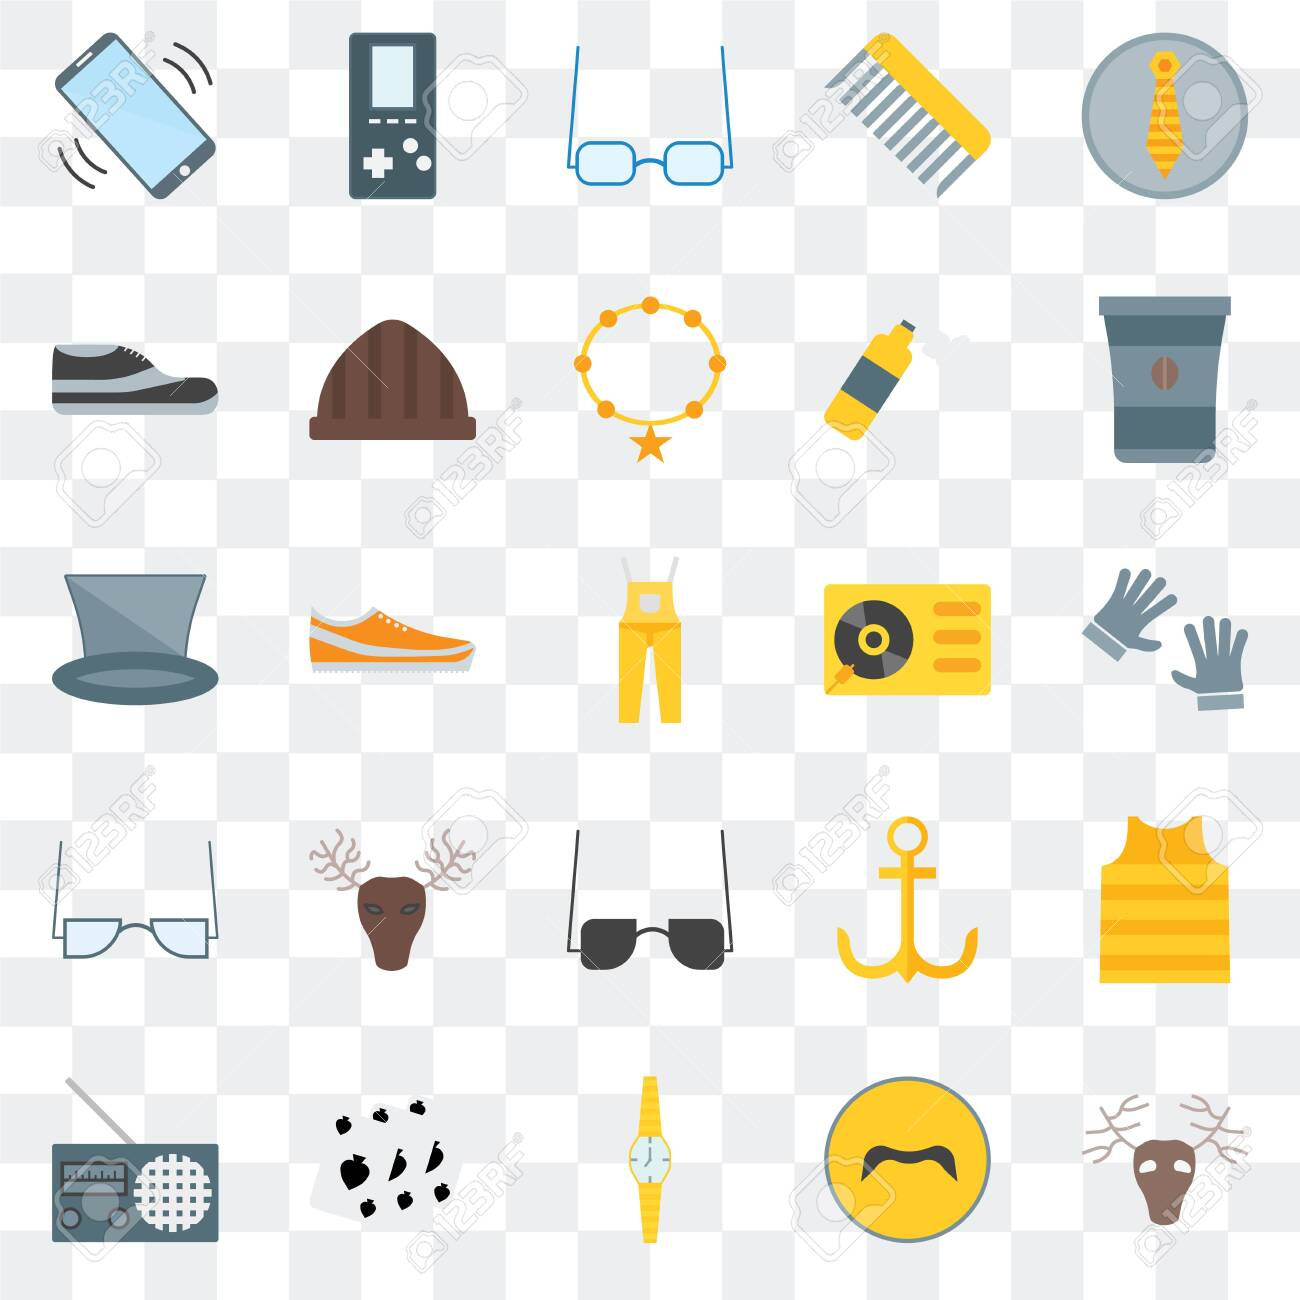 Set Of 25 transparent icons such as Deer, Mustache, Watch, Leisure, Radio, Coffee cup, Turntable, Sunglasses, Accessory, Footwear, web UI transparency icon pack - 130332532